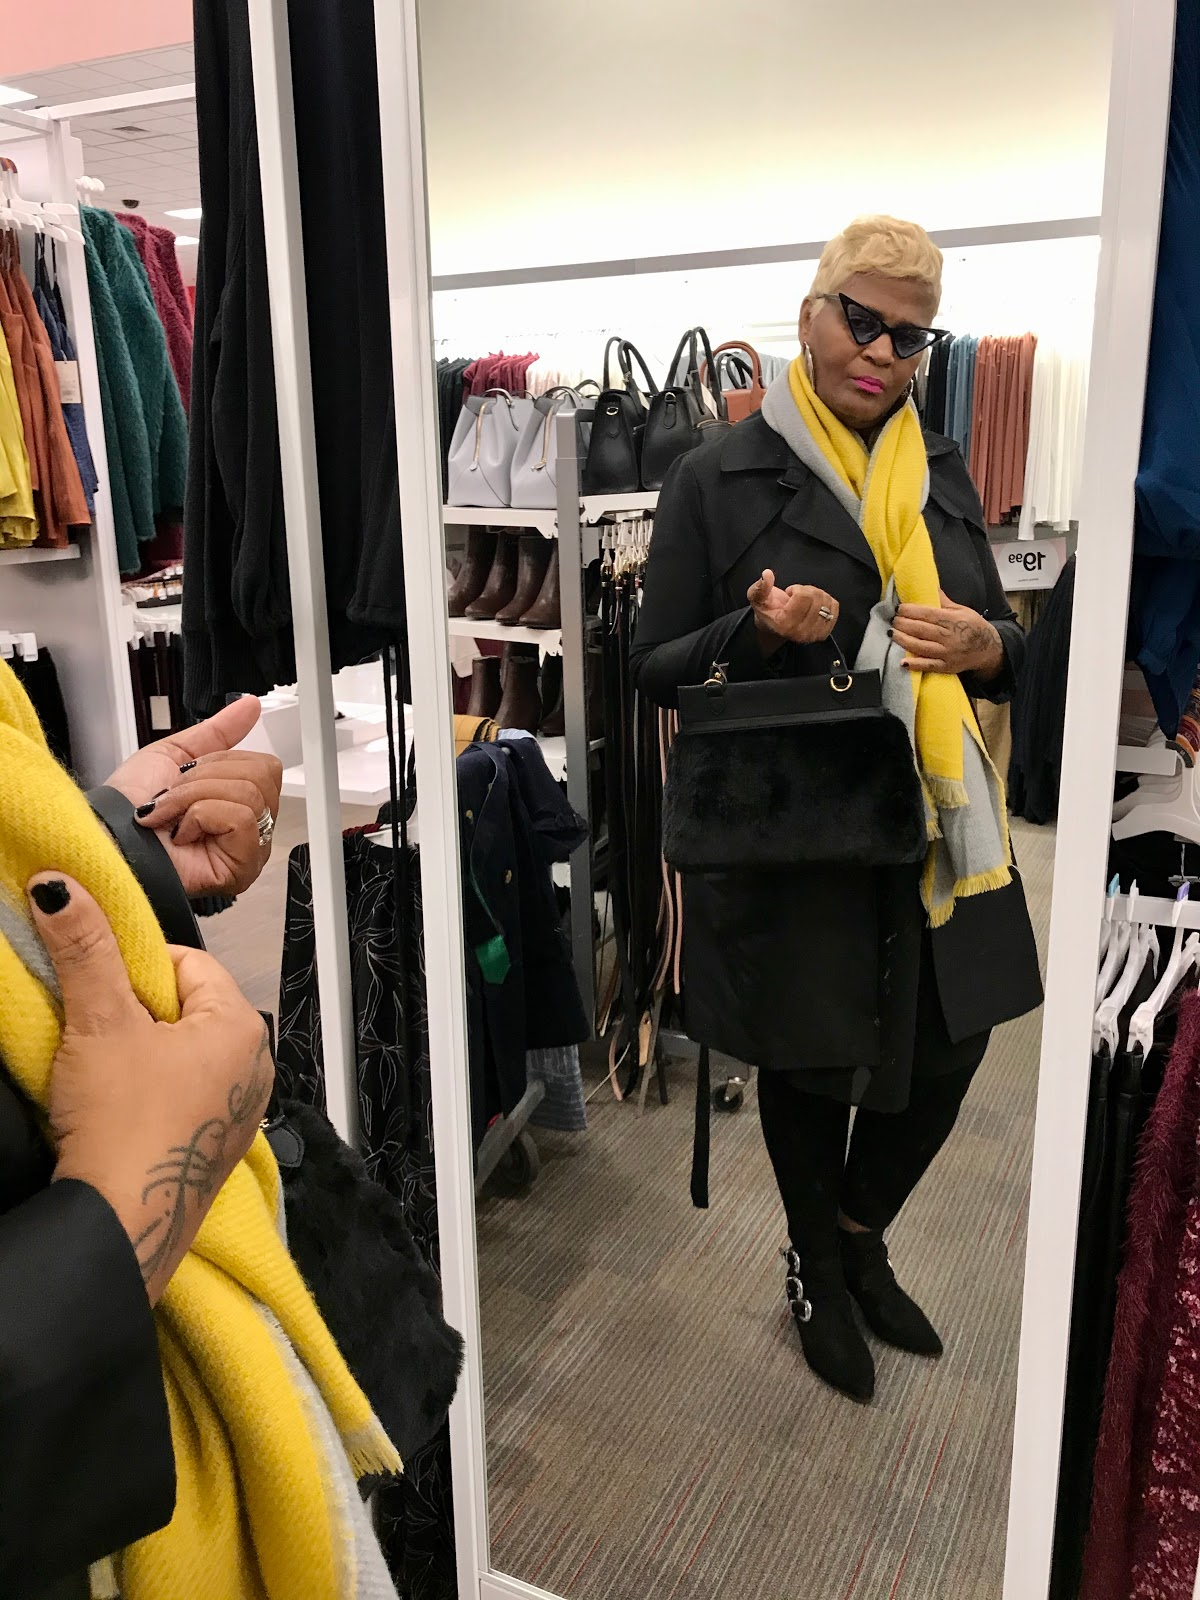 Woman trying on black purse and yellow scarf at Target. Outfit of the day